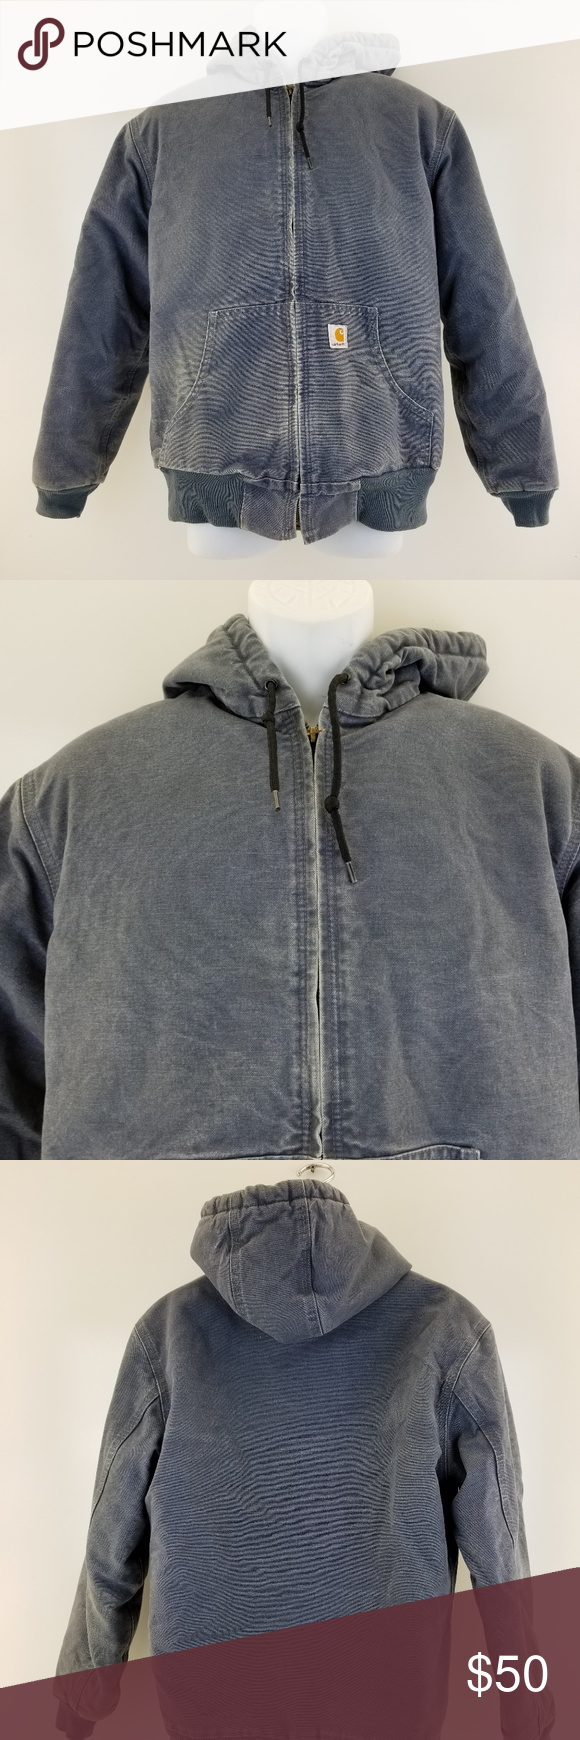 Carhartt Womens Work Jacket Coat Medium 14806 Blui Carhartt Womens Work Jacket Coat Medium 14806 Bluish Gray Blue Denim    A51 Carhartt Jackets & Coats Utility Jackets #carharttwomen Carhartt Womens Work Jacket Coat Medium 14806 Blui Carhartt Womens Work Jacket Coat Medium 14806 Bluish Gray Blue Denim    A51 Carhartt Jackets & Coats Utility Jackets #carharttwomen